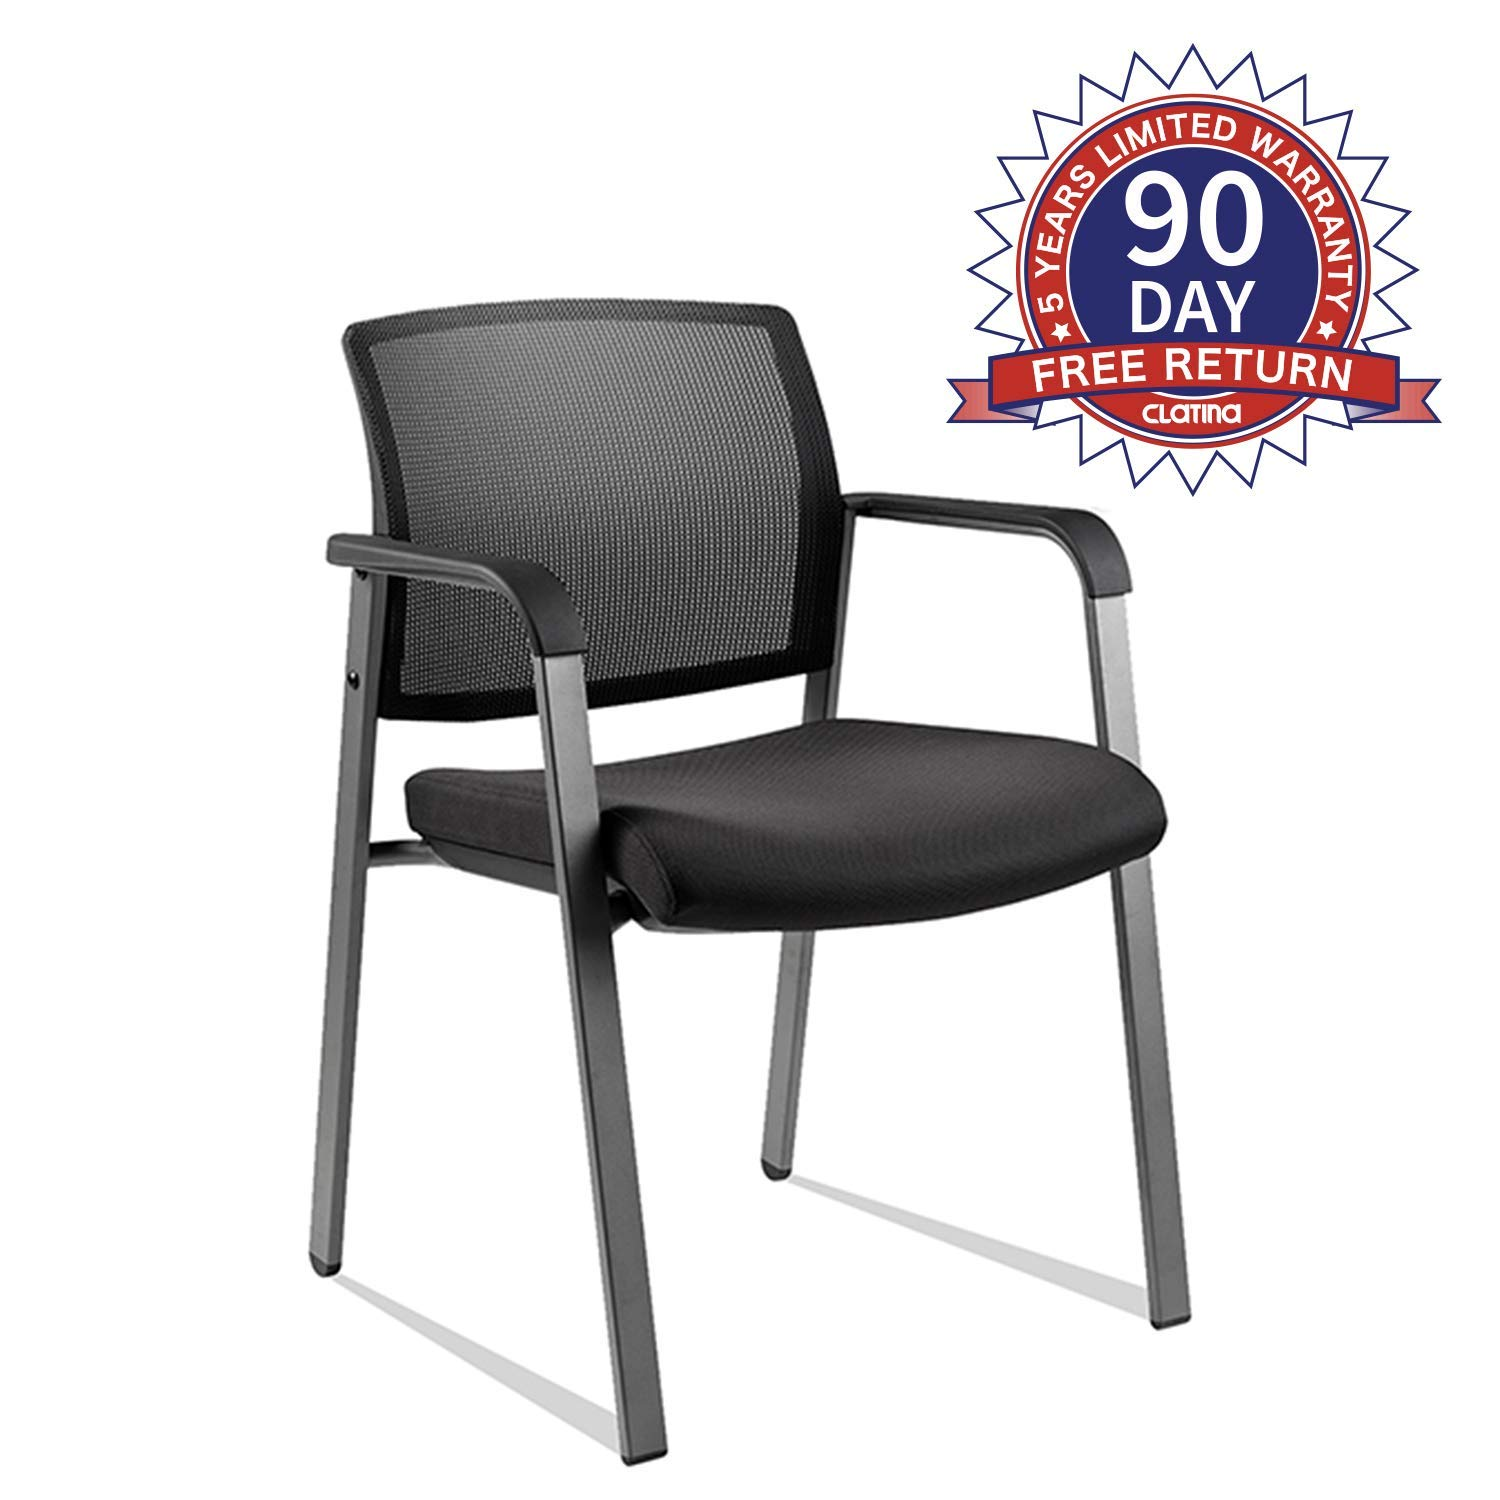 Mesh Back Stack Arm Chairs with Upholstered Fabric Seat and Ergonomic Lumber Support for Office School Church Guest Reception Black by CLATINA